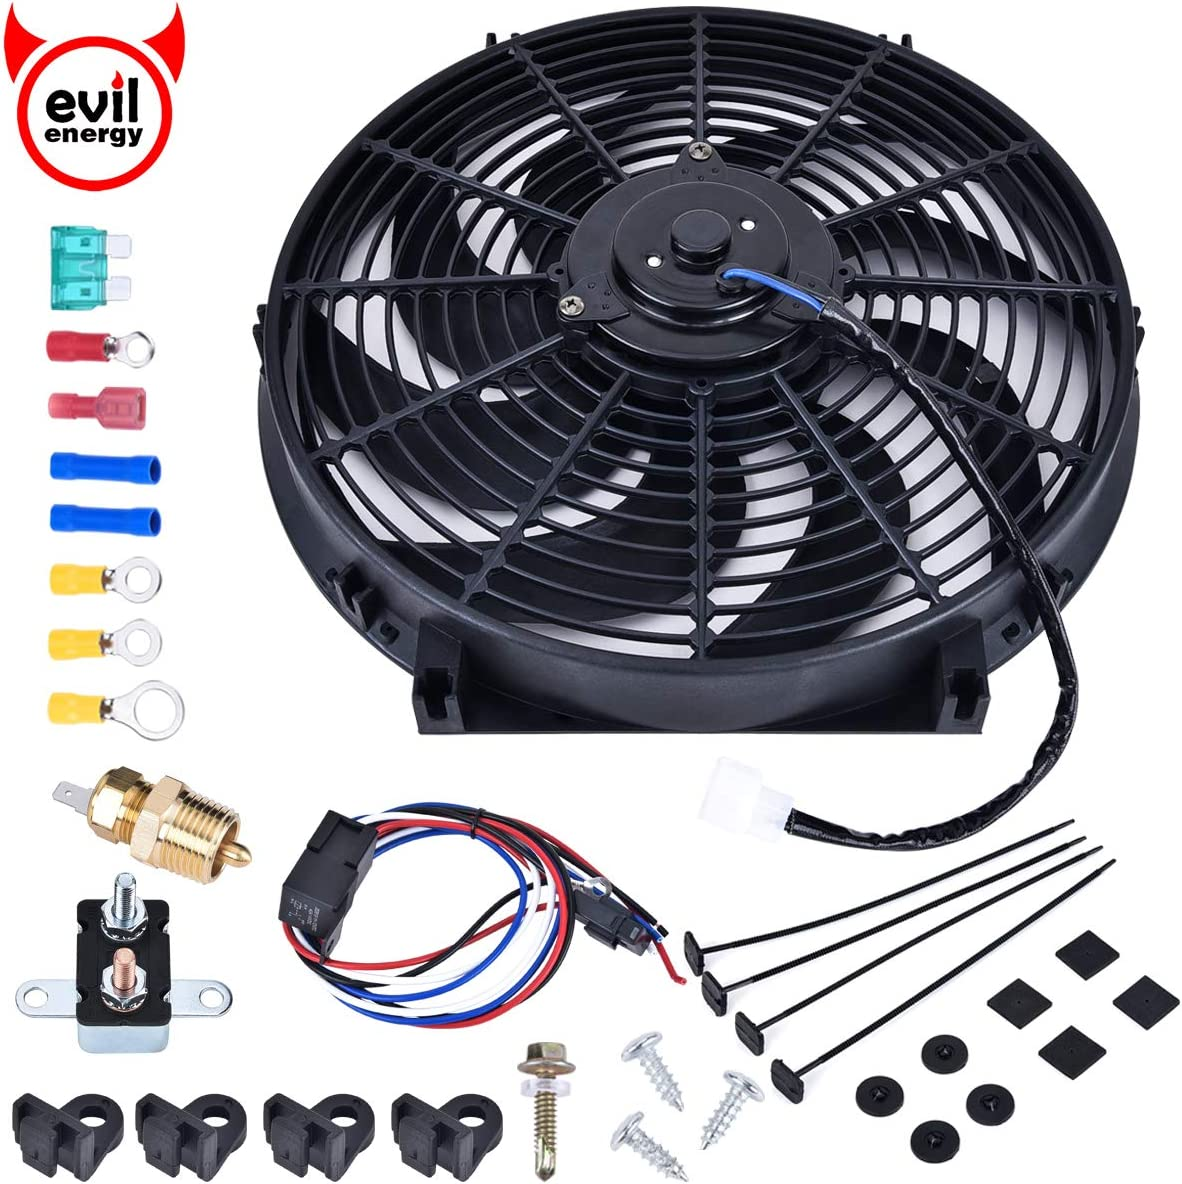 EVIL ENERGY Universal 12IN 12V 80W 1800CFM Electric Radiator Cooling Fan Mounting Kit 175-185 Degree Thermostat Relay Switch Kit Black Reversible Puller Push